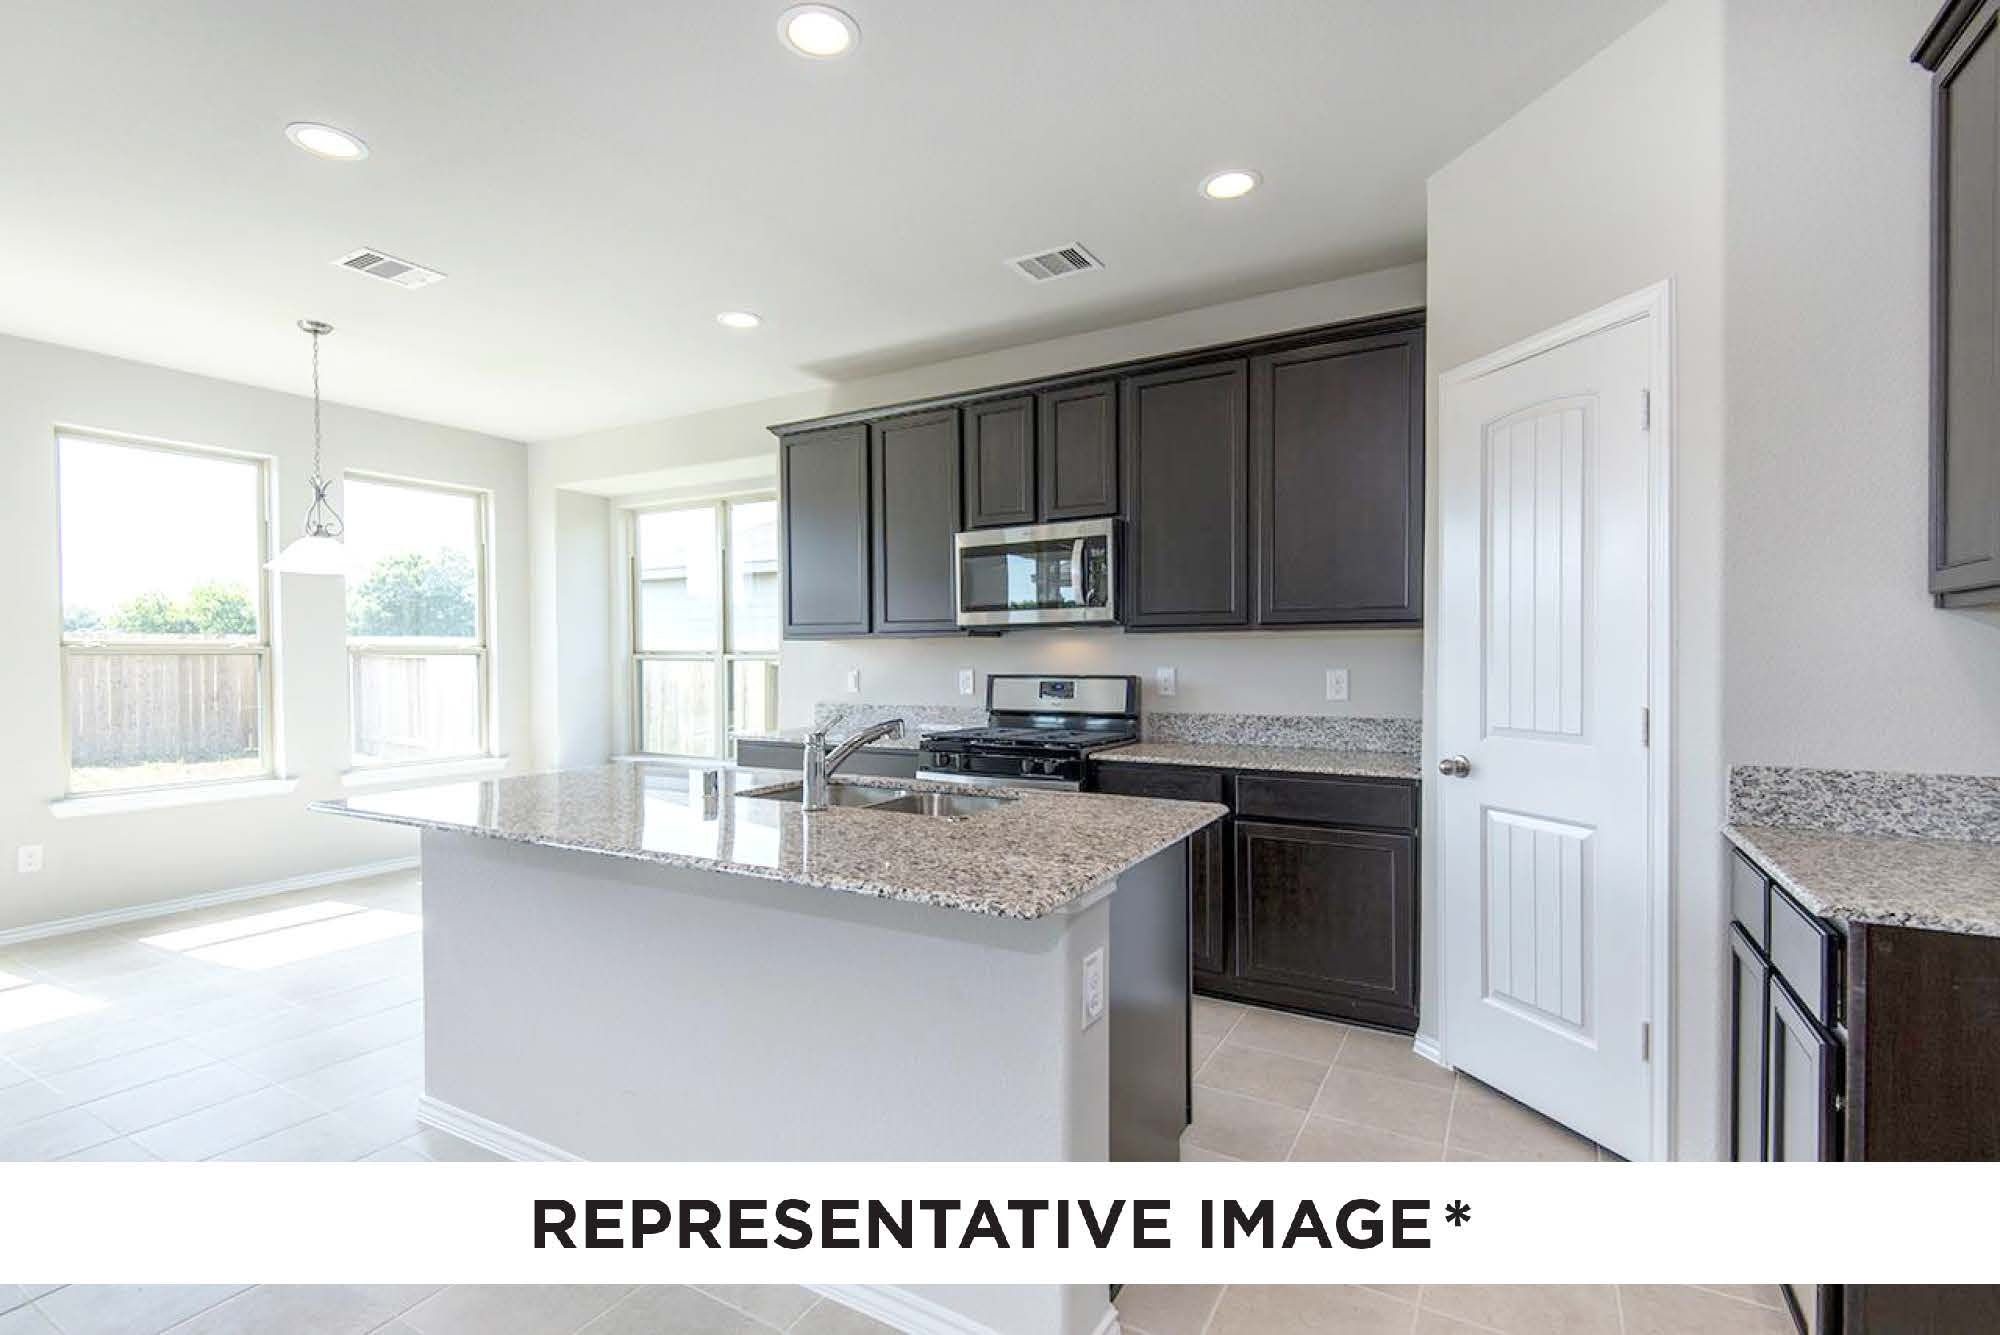 Kitchen featured in the Gladewater By HistoryMaker Homes    in Houston, TX